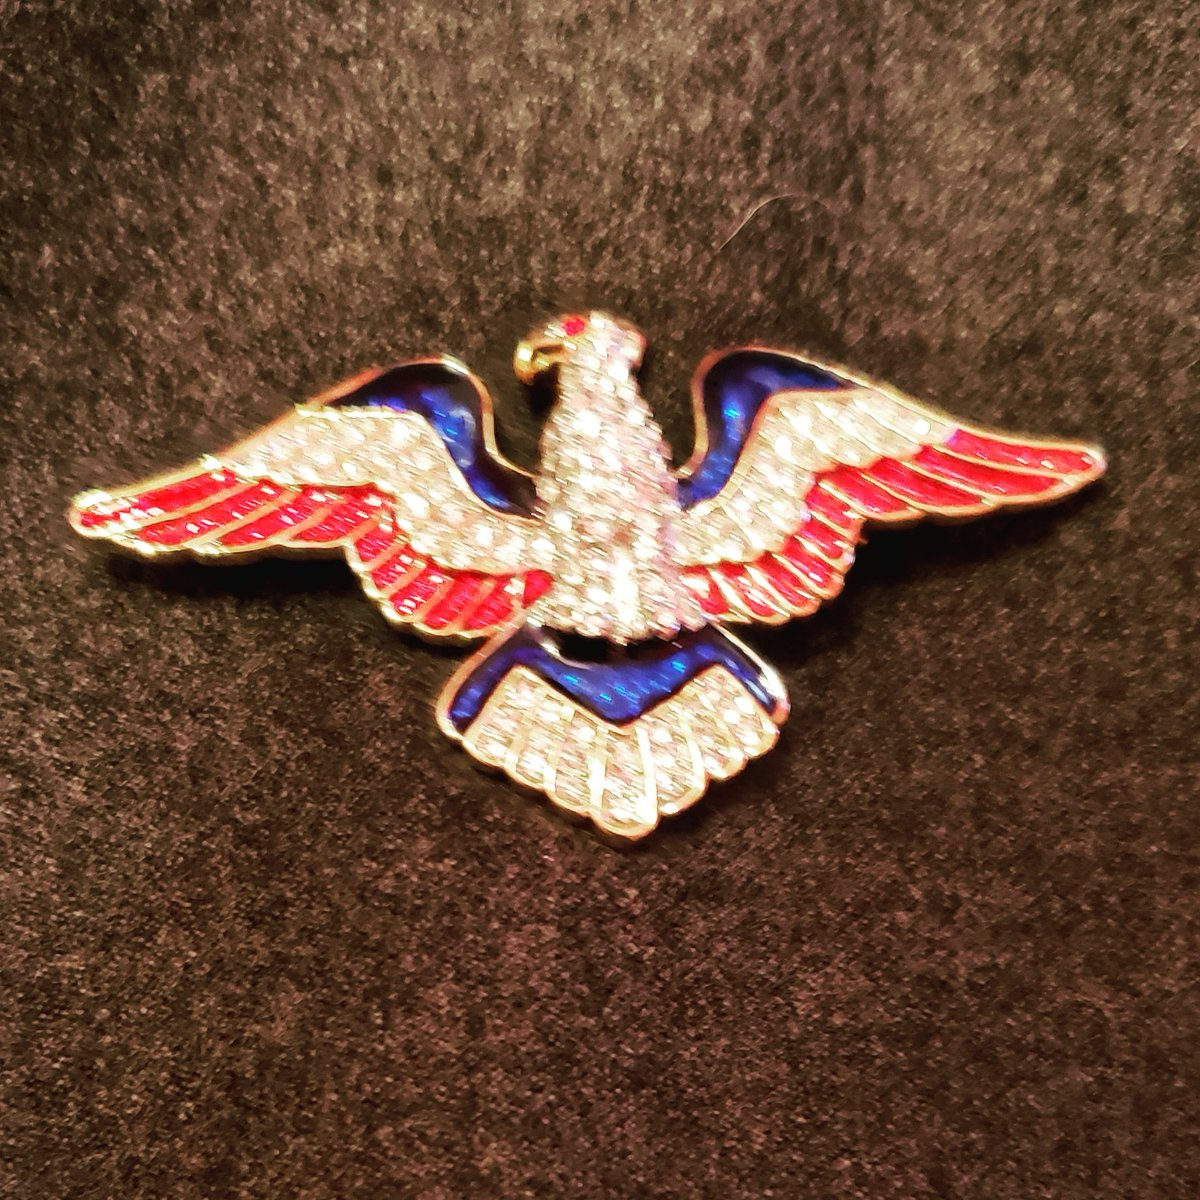 Manhattan DA preparing charges against Manafort that don&#39;t run afoul of NY dbl jeop as insurance against Trump pardon of fed cases or to use even if there&#39;s no pardon. Will discuss w @chrislhayes on @allinwithchris on #MSNBC at 7 CT. #JillsPin supports Mueller, democracy&amp; justice<br>http://pic.twitter.com/N4DwgmmZ5N